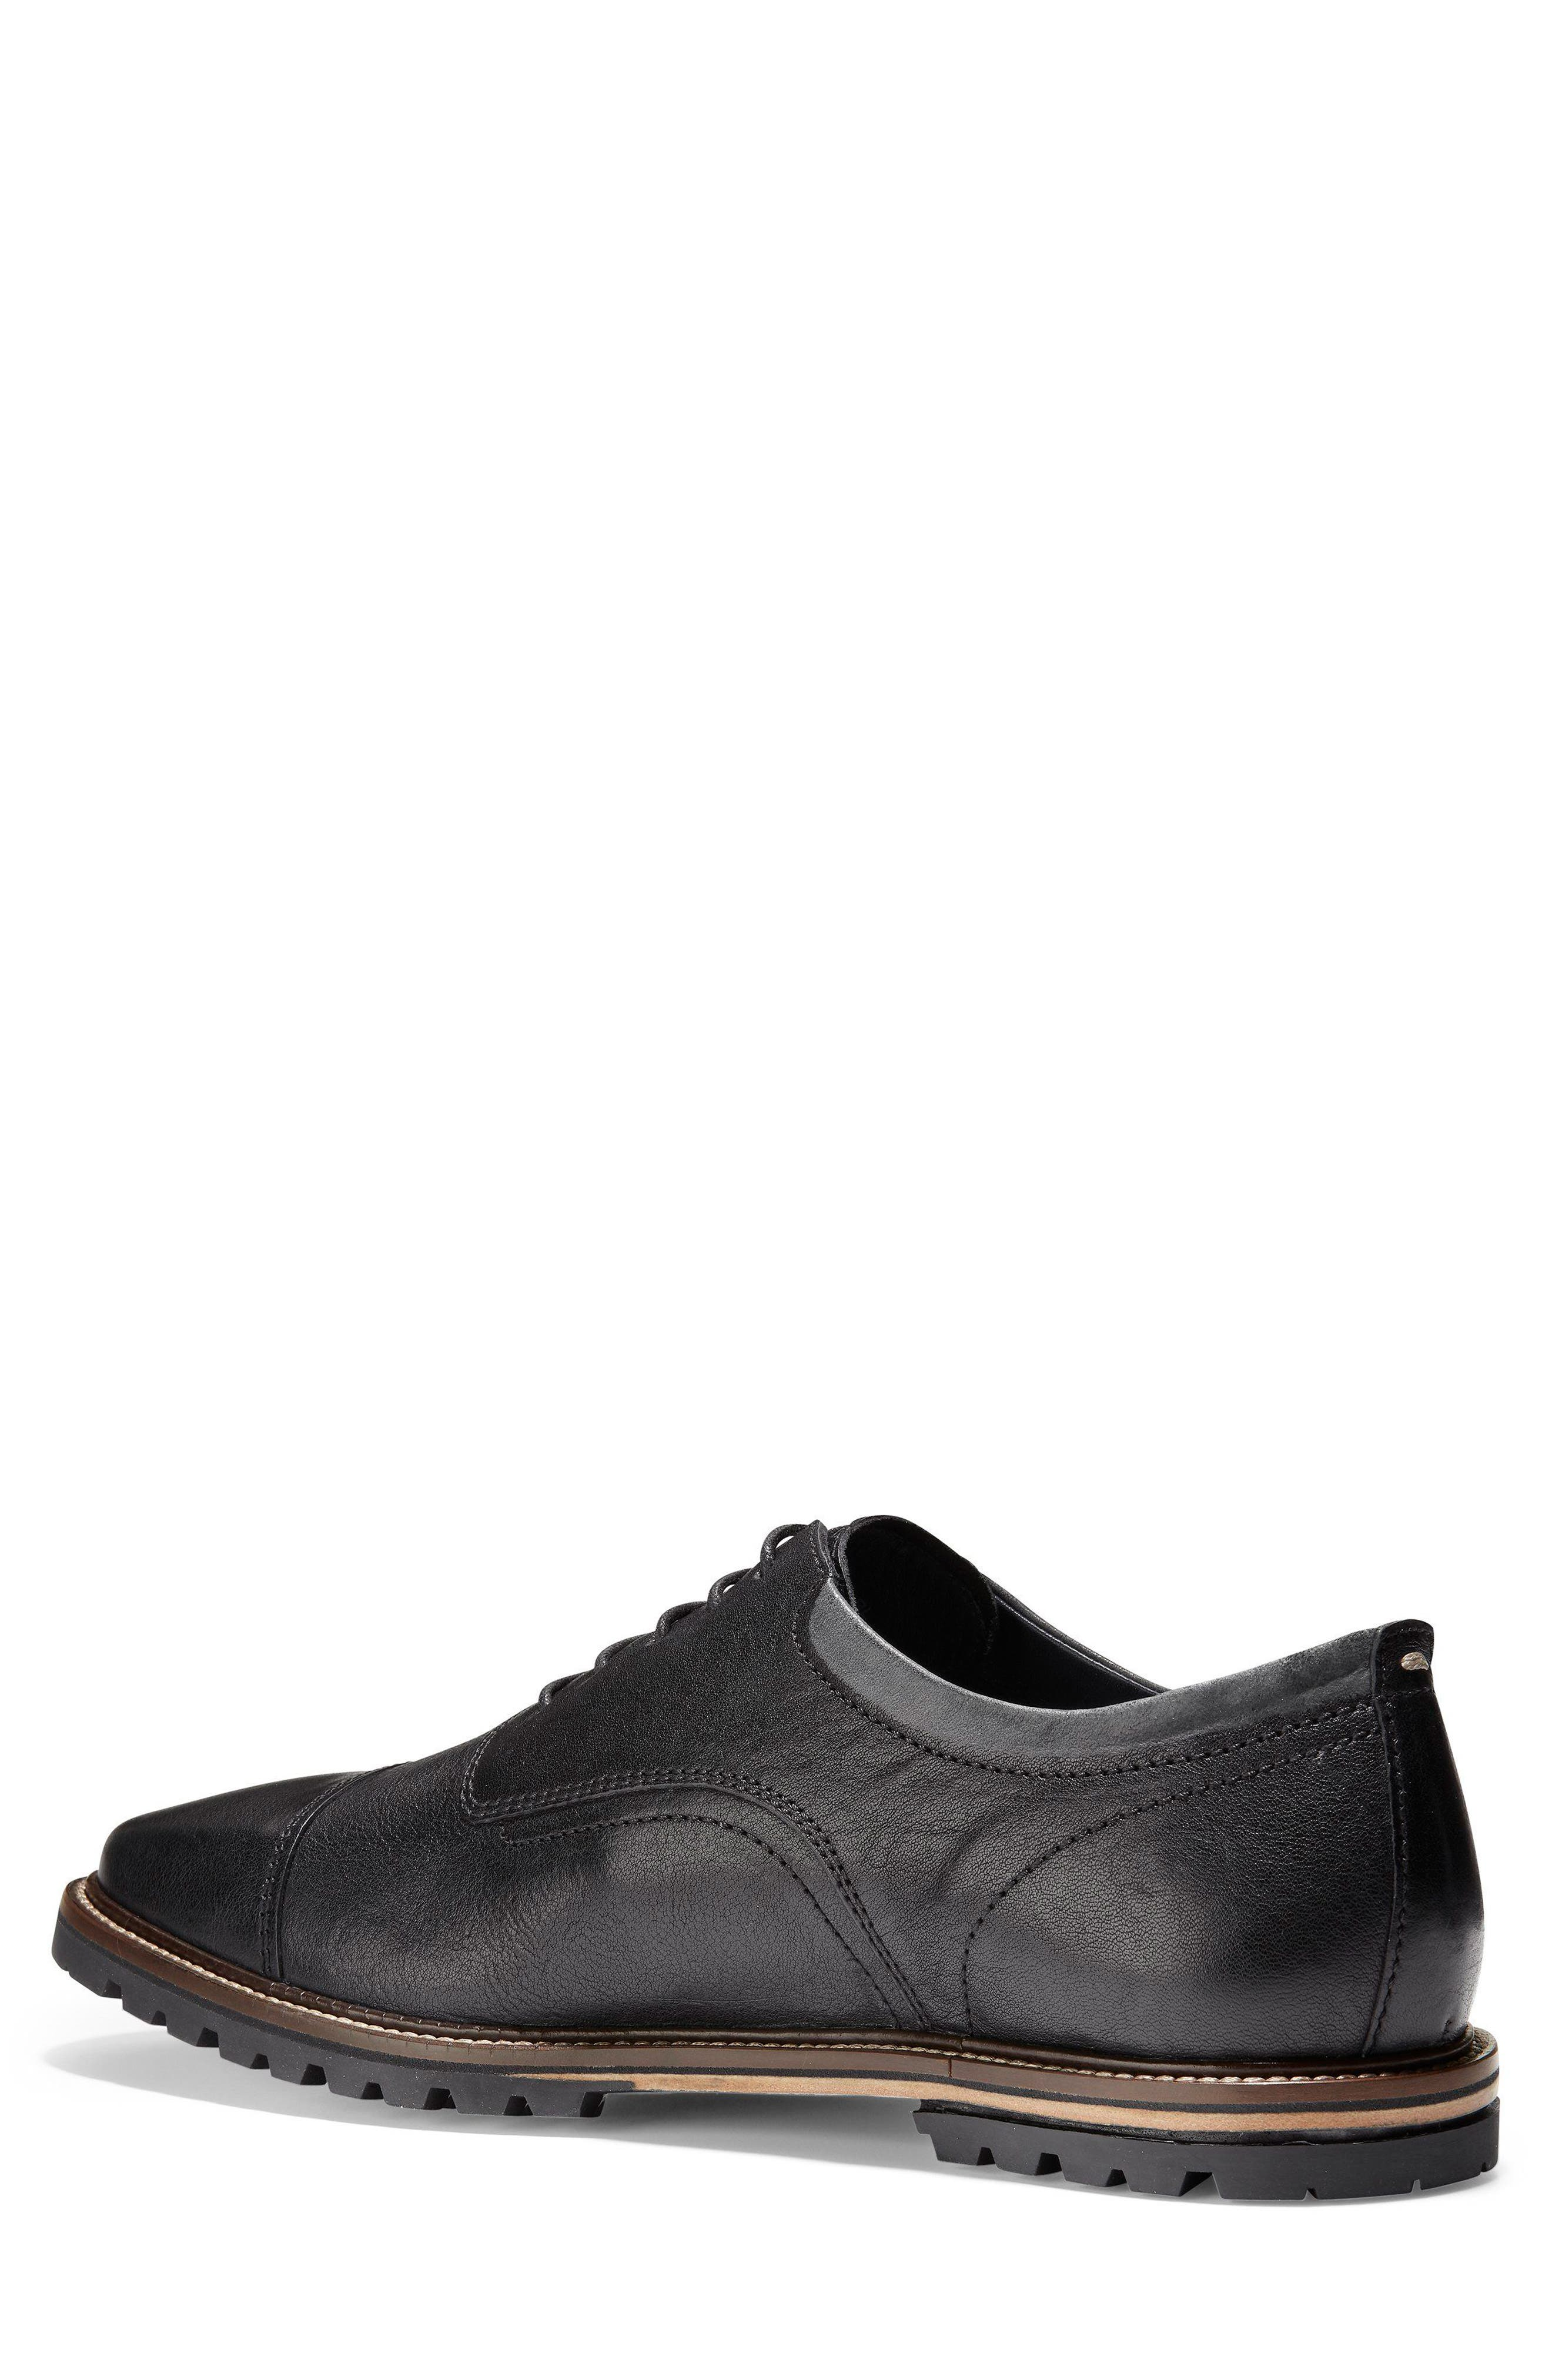 Richardson Cap Toe Derby,                             Alternate thumbnail 2, color,                             BLACK LEATHER